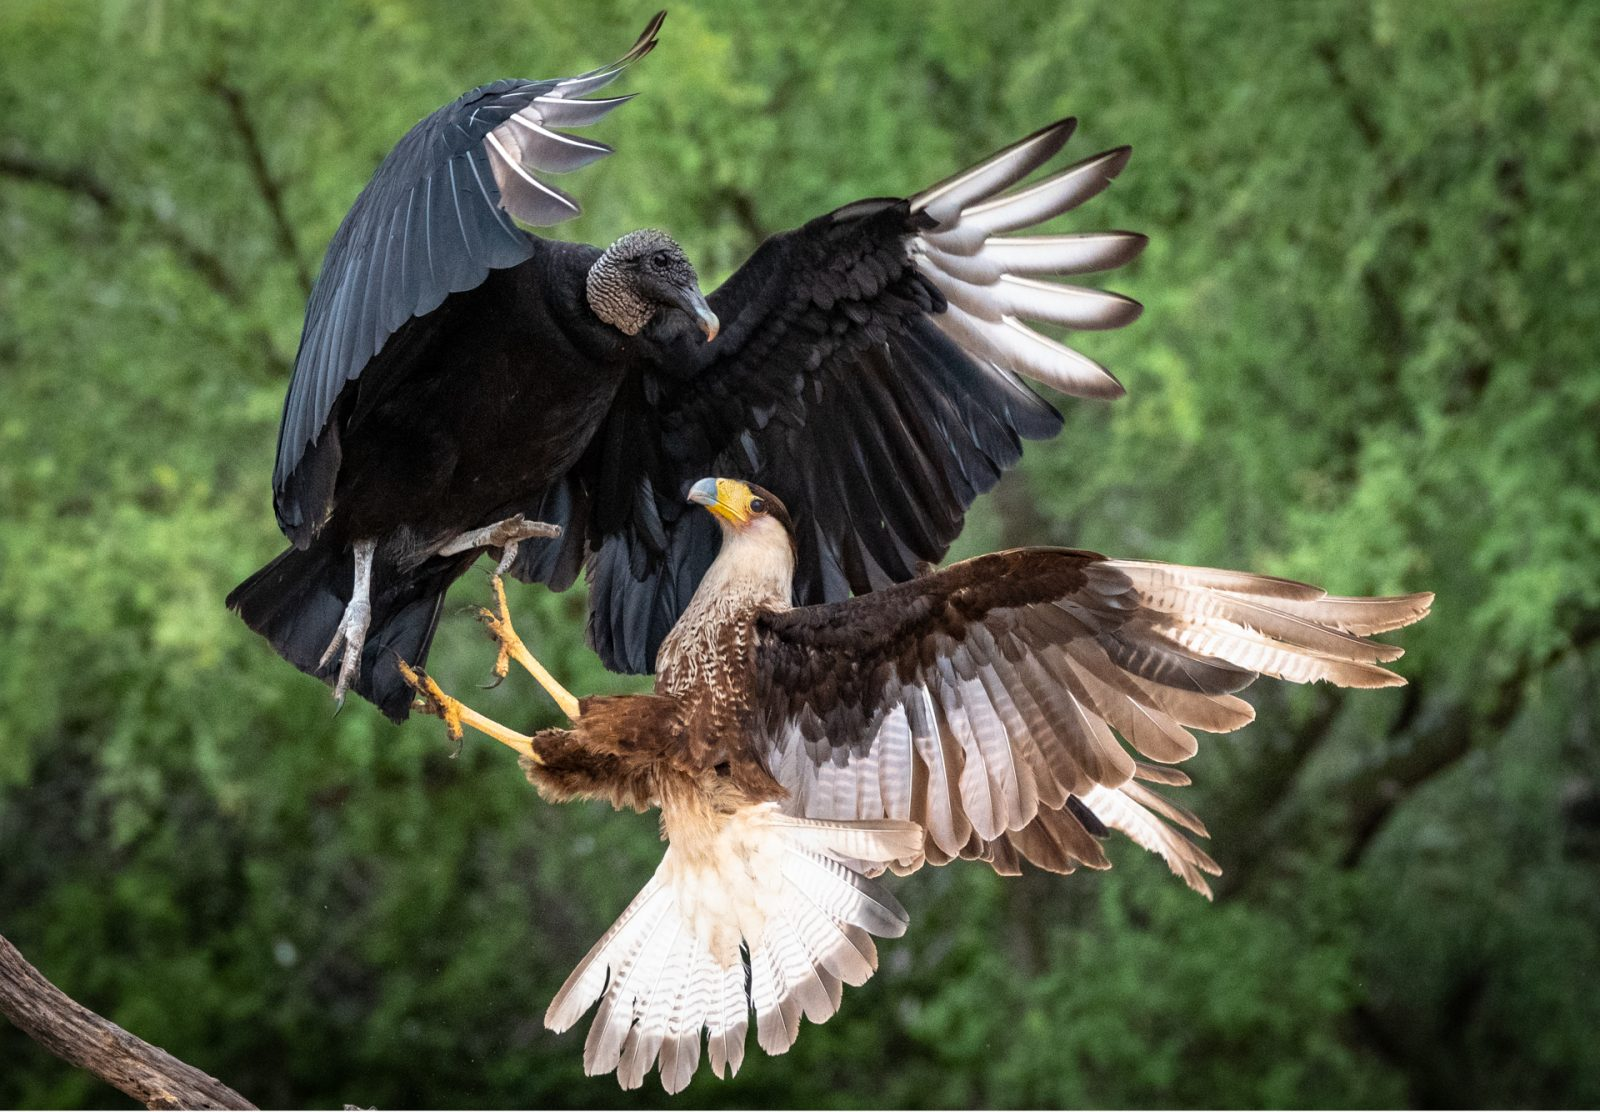 Caracara and Black Vulture Fighting